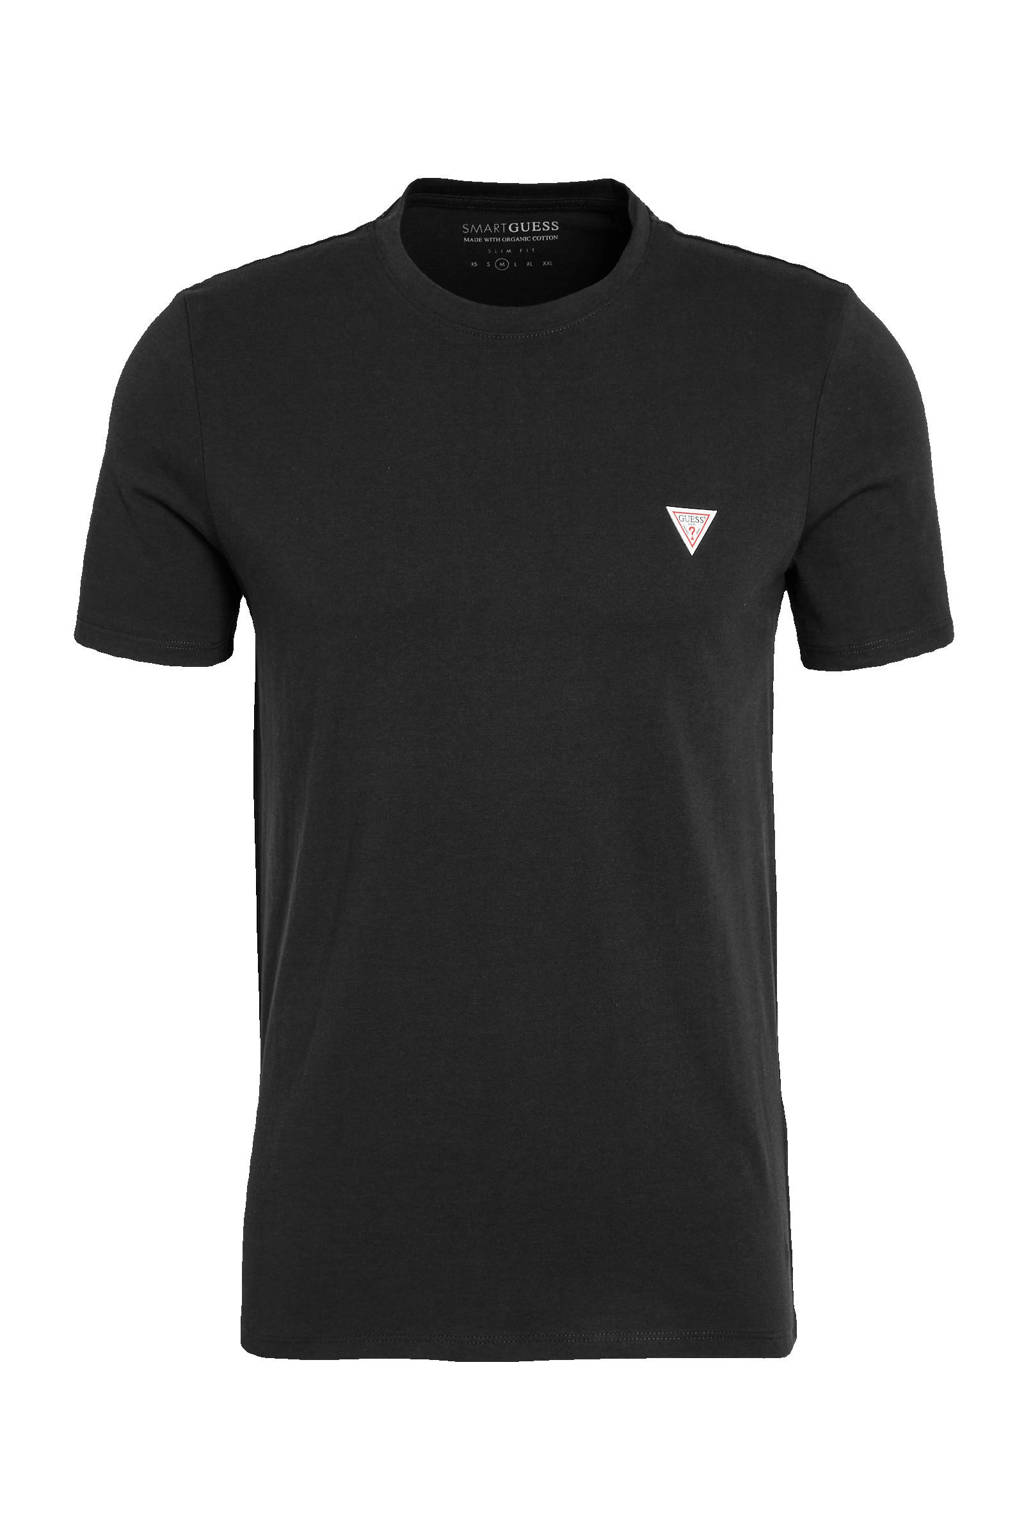 GUESS basic T-shirt zwart, Zwart